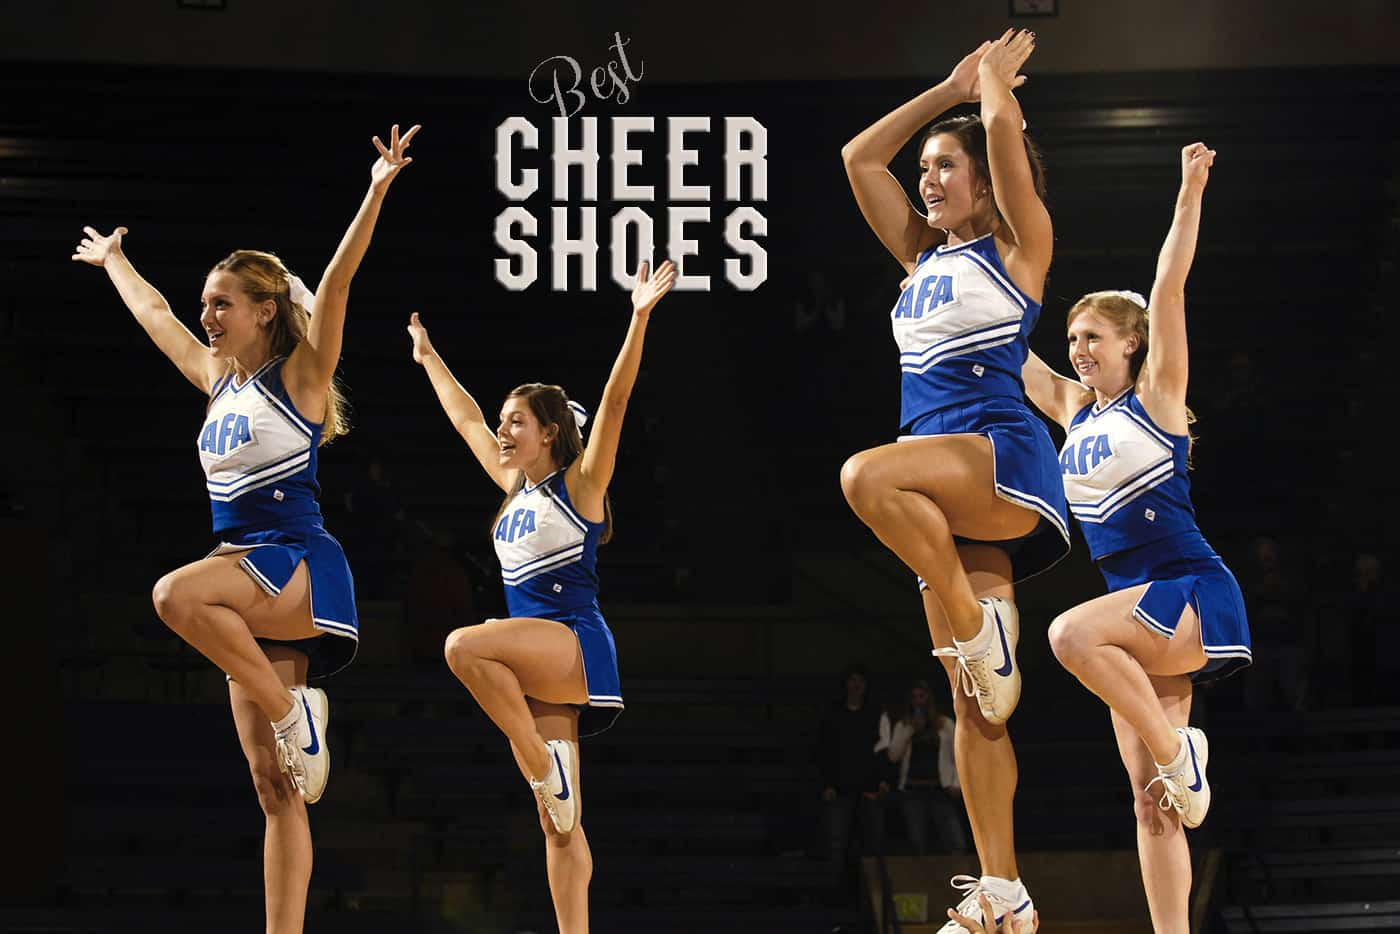 Cheerleading Shoes the 10 best for 2020 | Sport Consumer